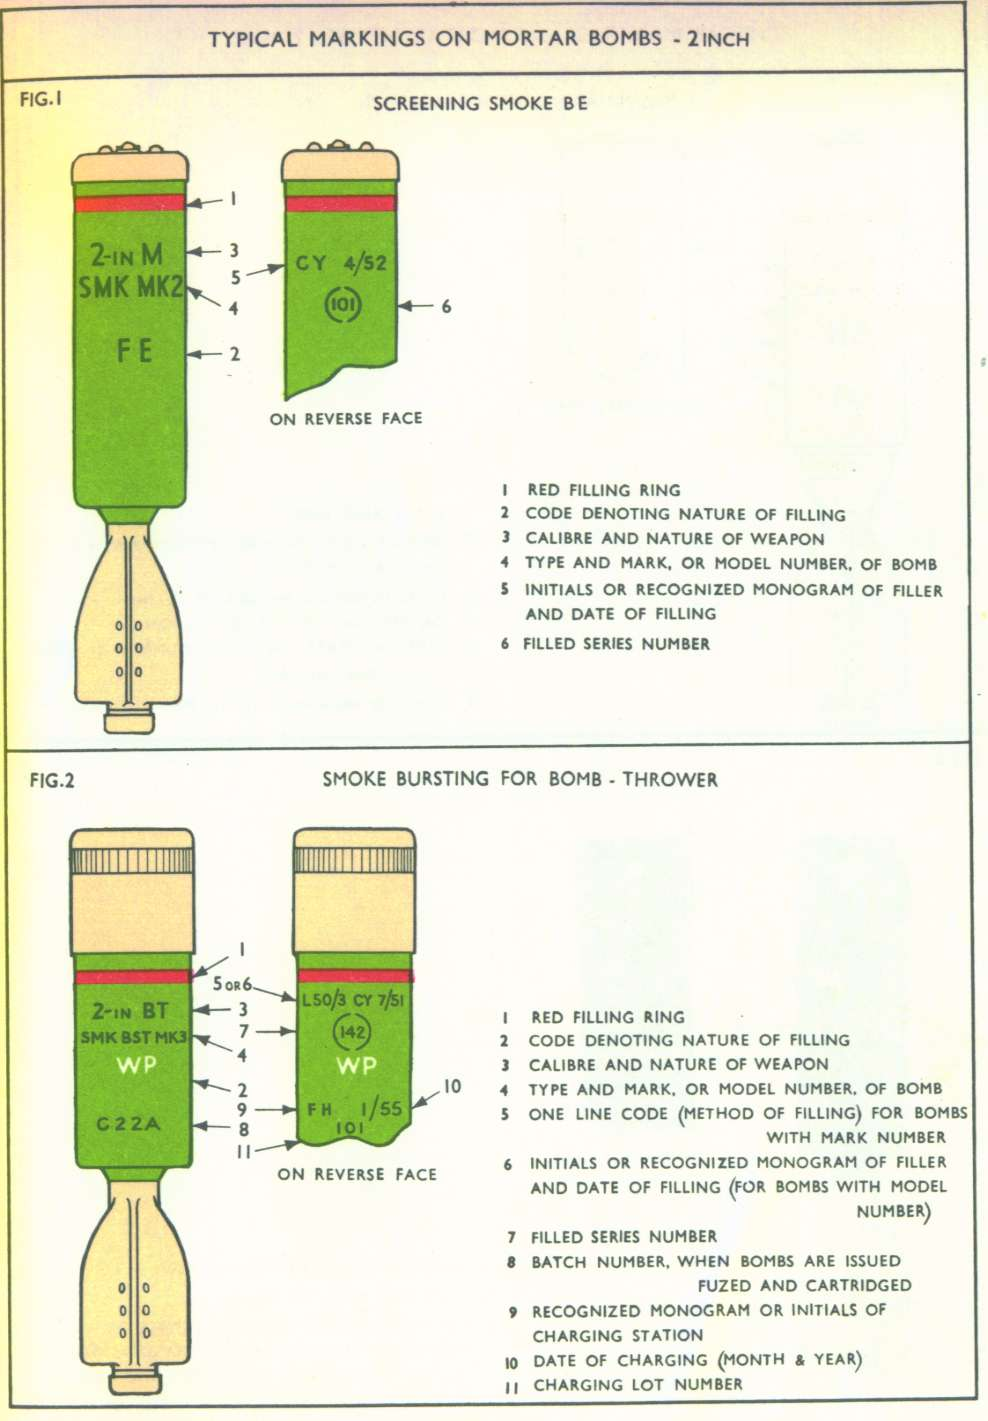 Typical Markings for 2in Mortars Wph2